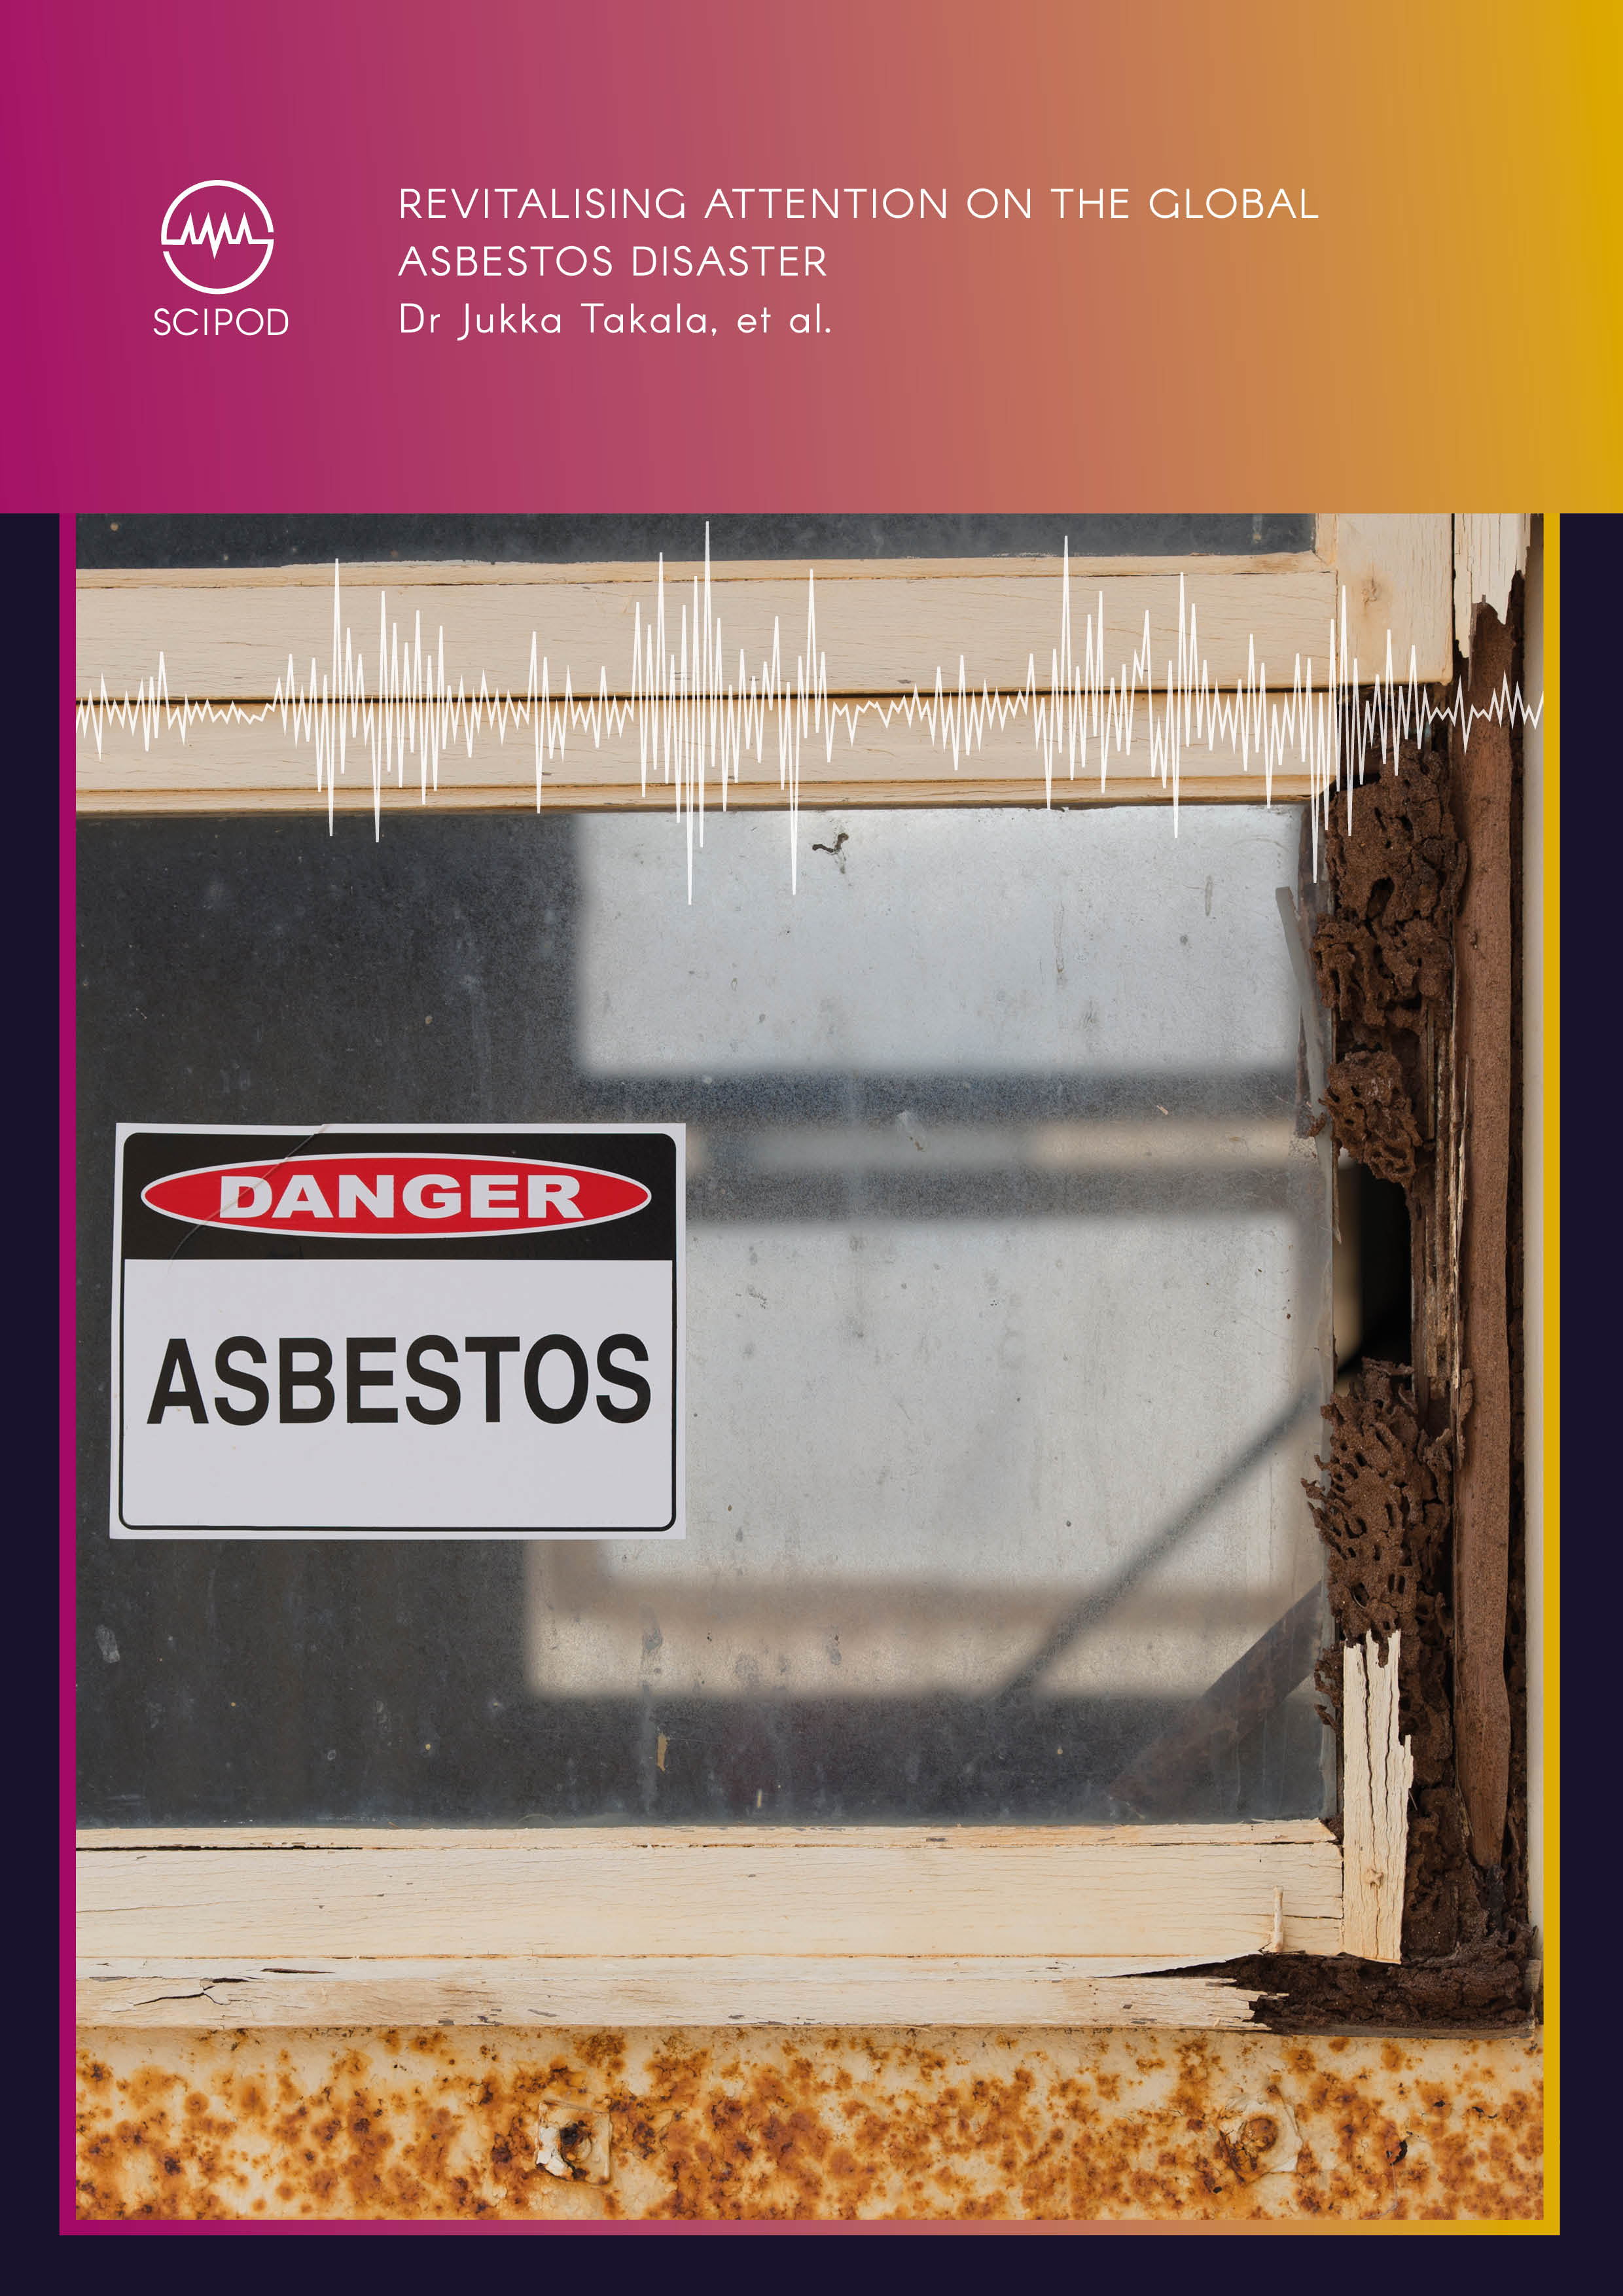 Revitalising Attention on the Global Asbestos Disaster – Dr Jukka Takala, et al.